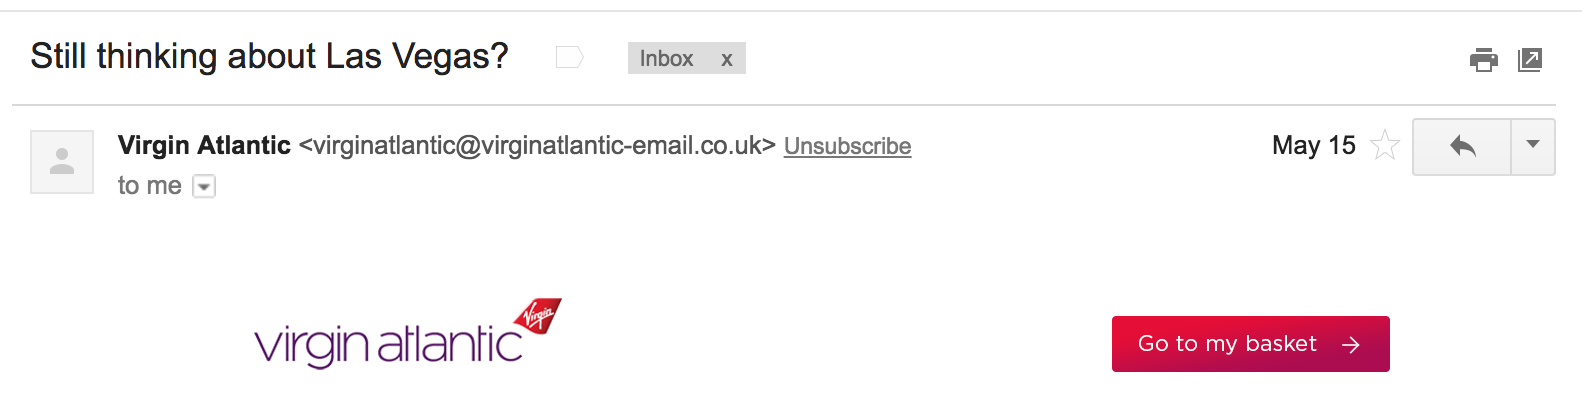 Best Email Subject Lines: Screenshot of email from Virgin Atlantic